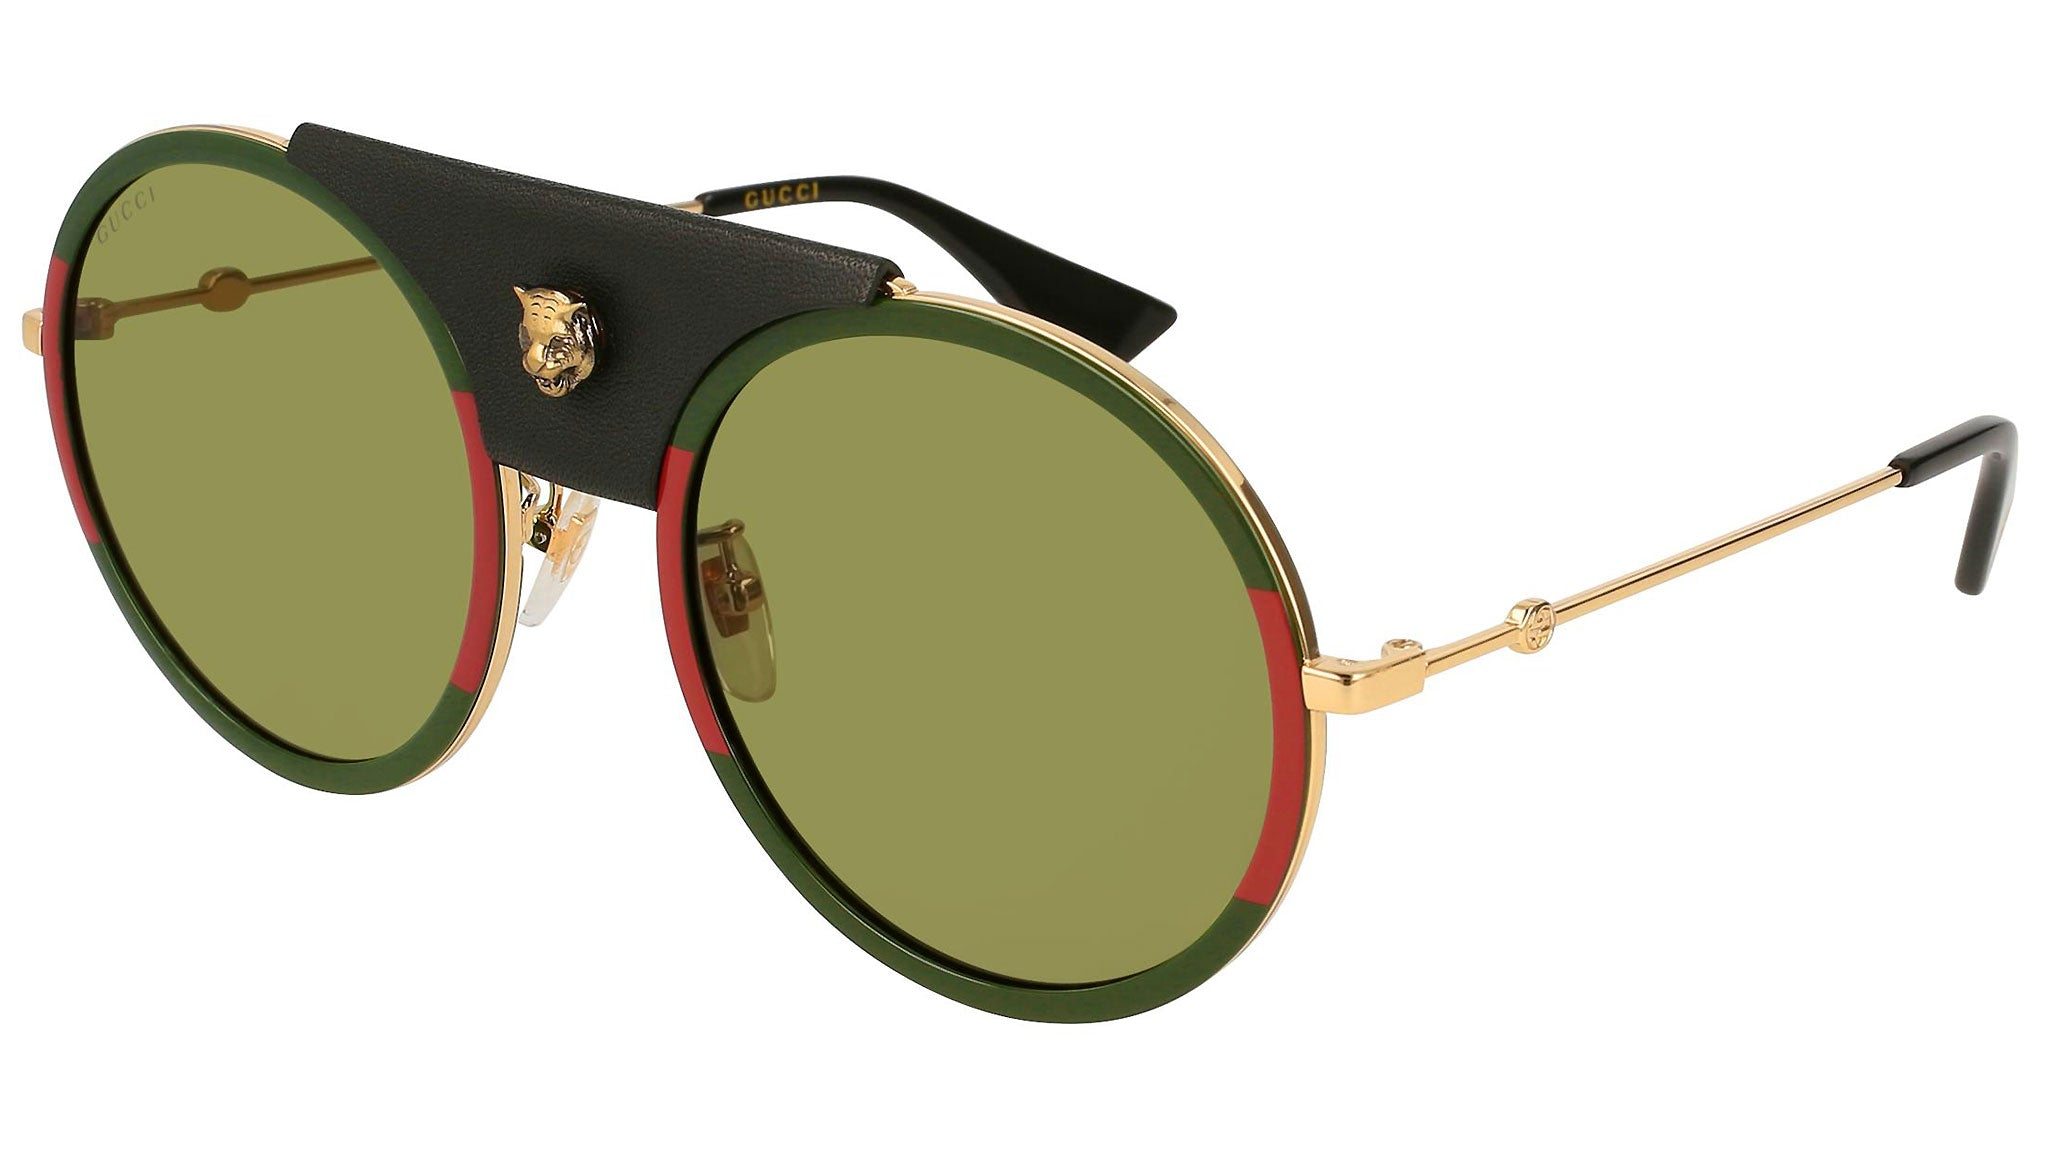 GG0061S multicolor gold and green